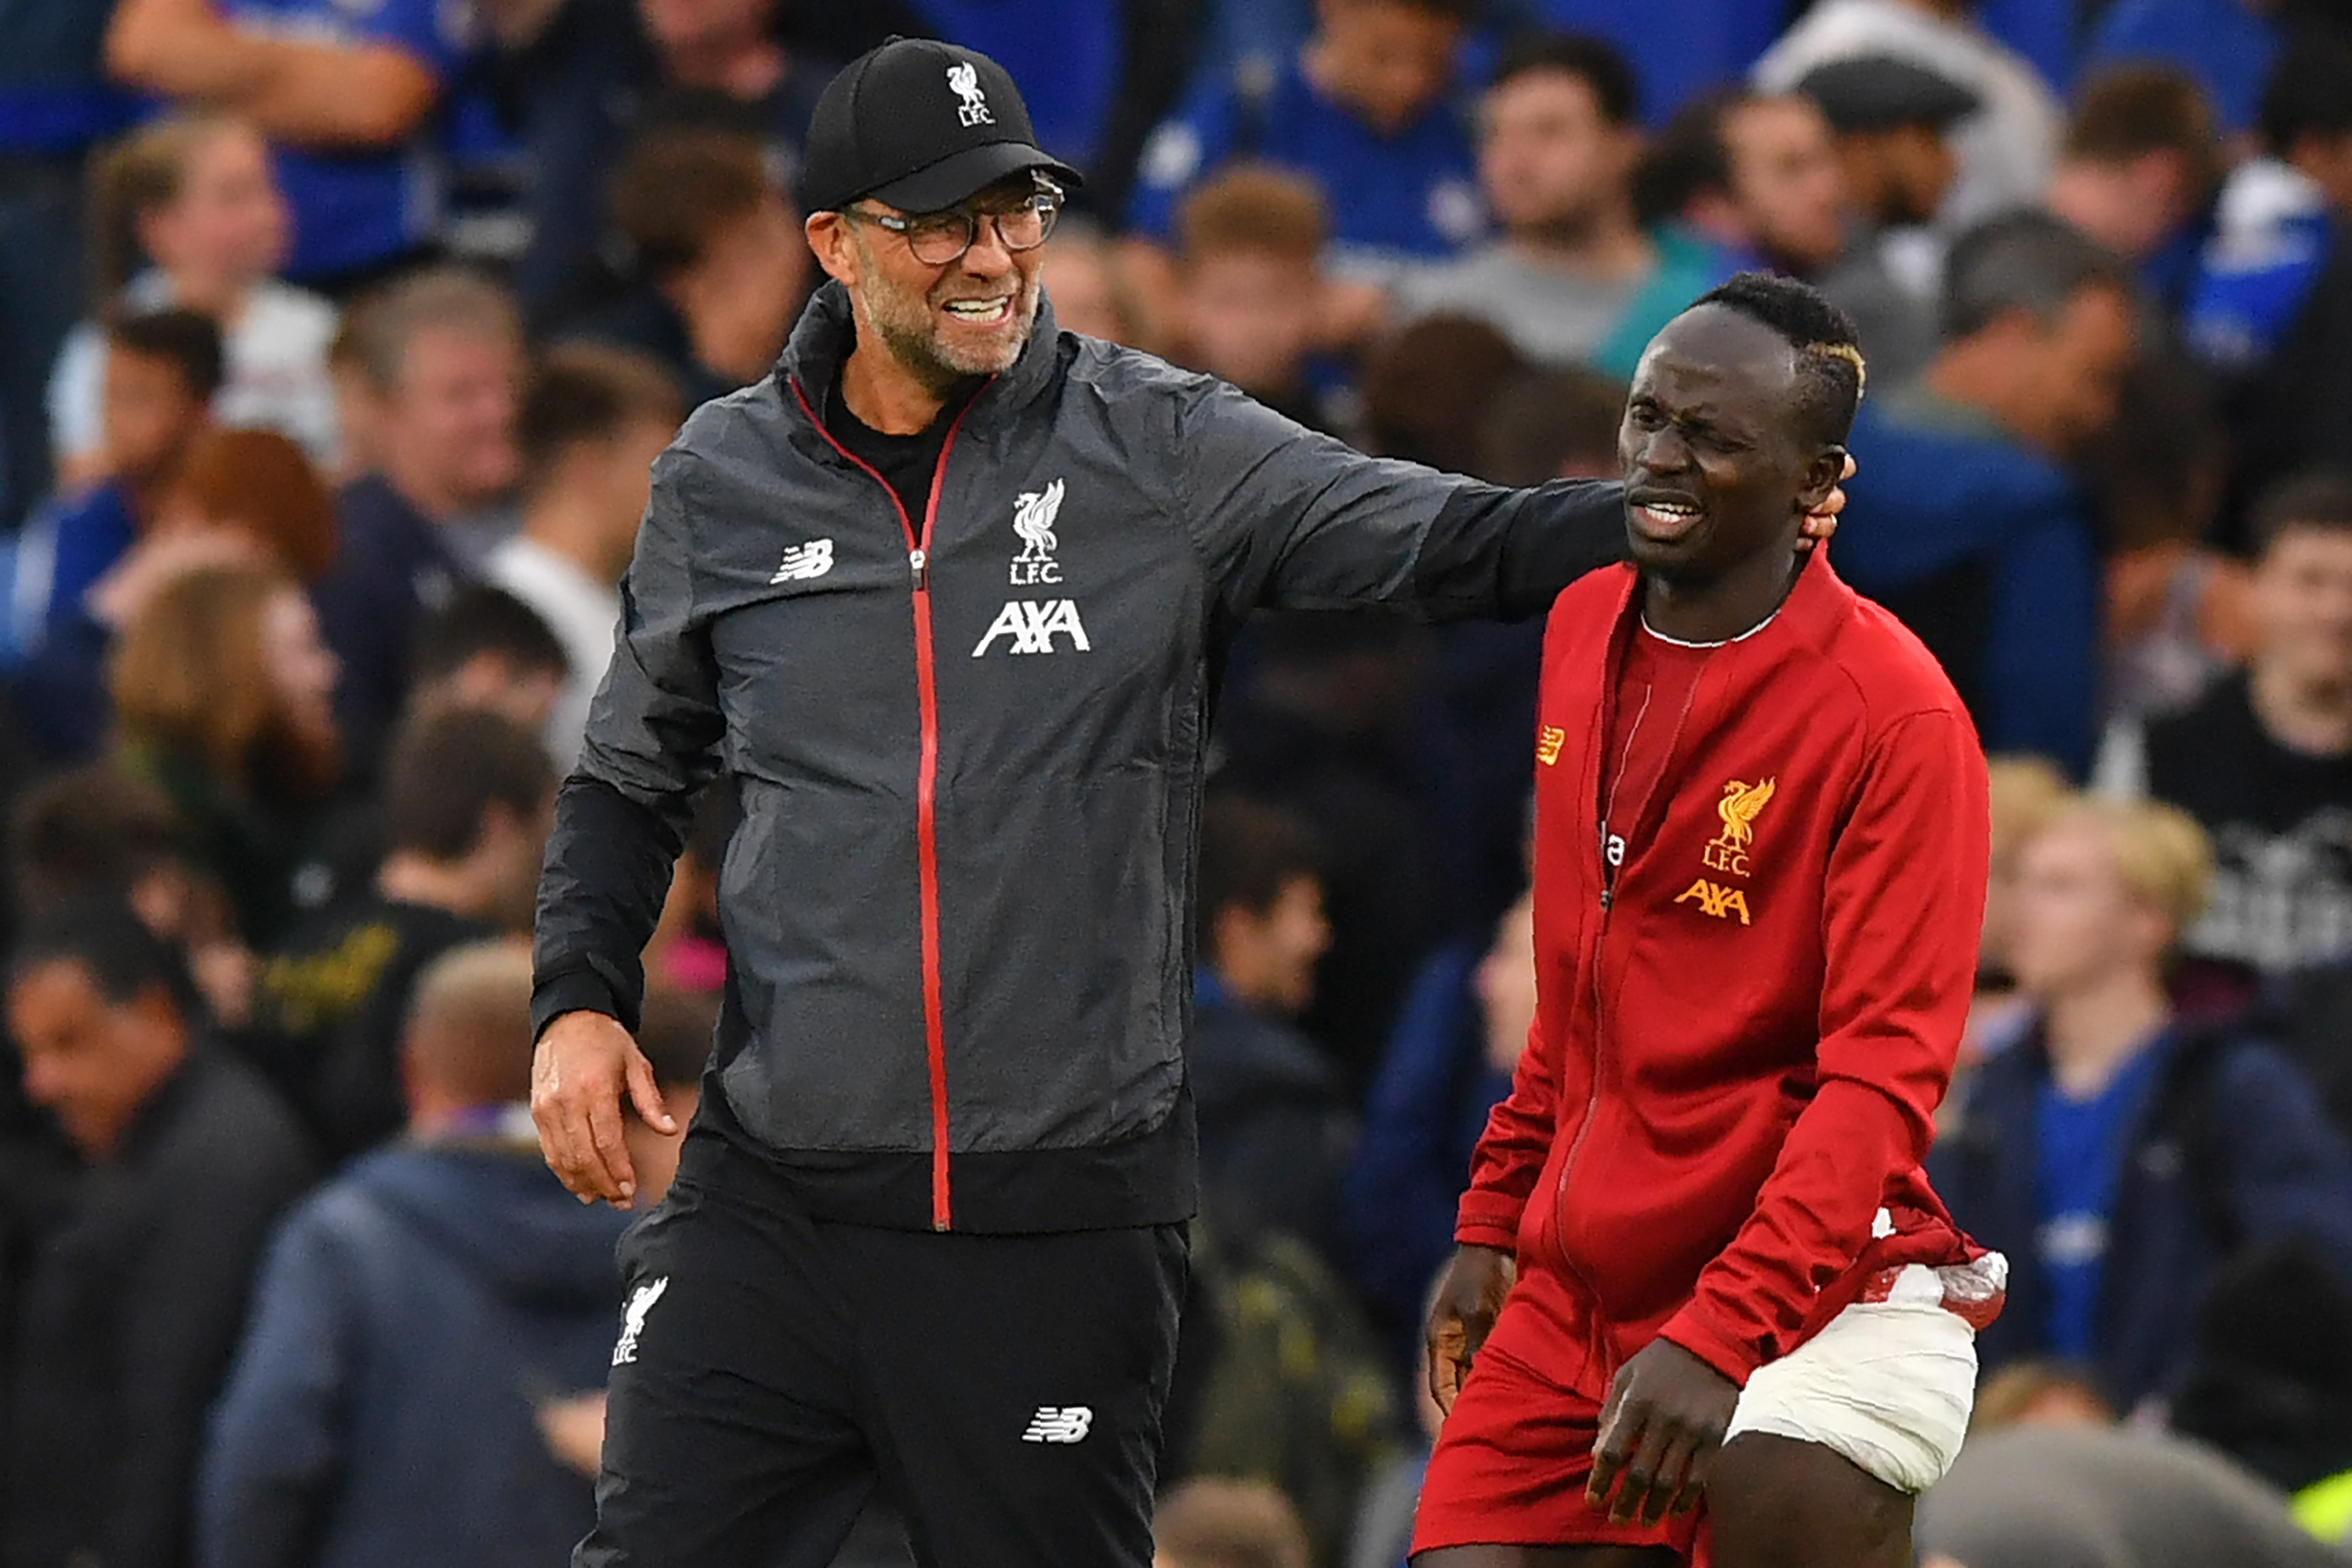 Will Mane part ways with Klopp this summer? (Photo by OLLY GREENWOOD/AFP via Getty Images)